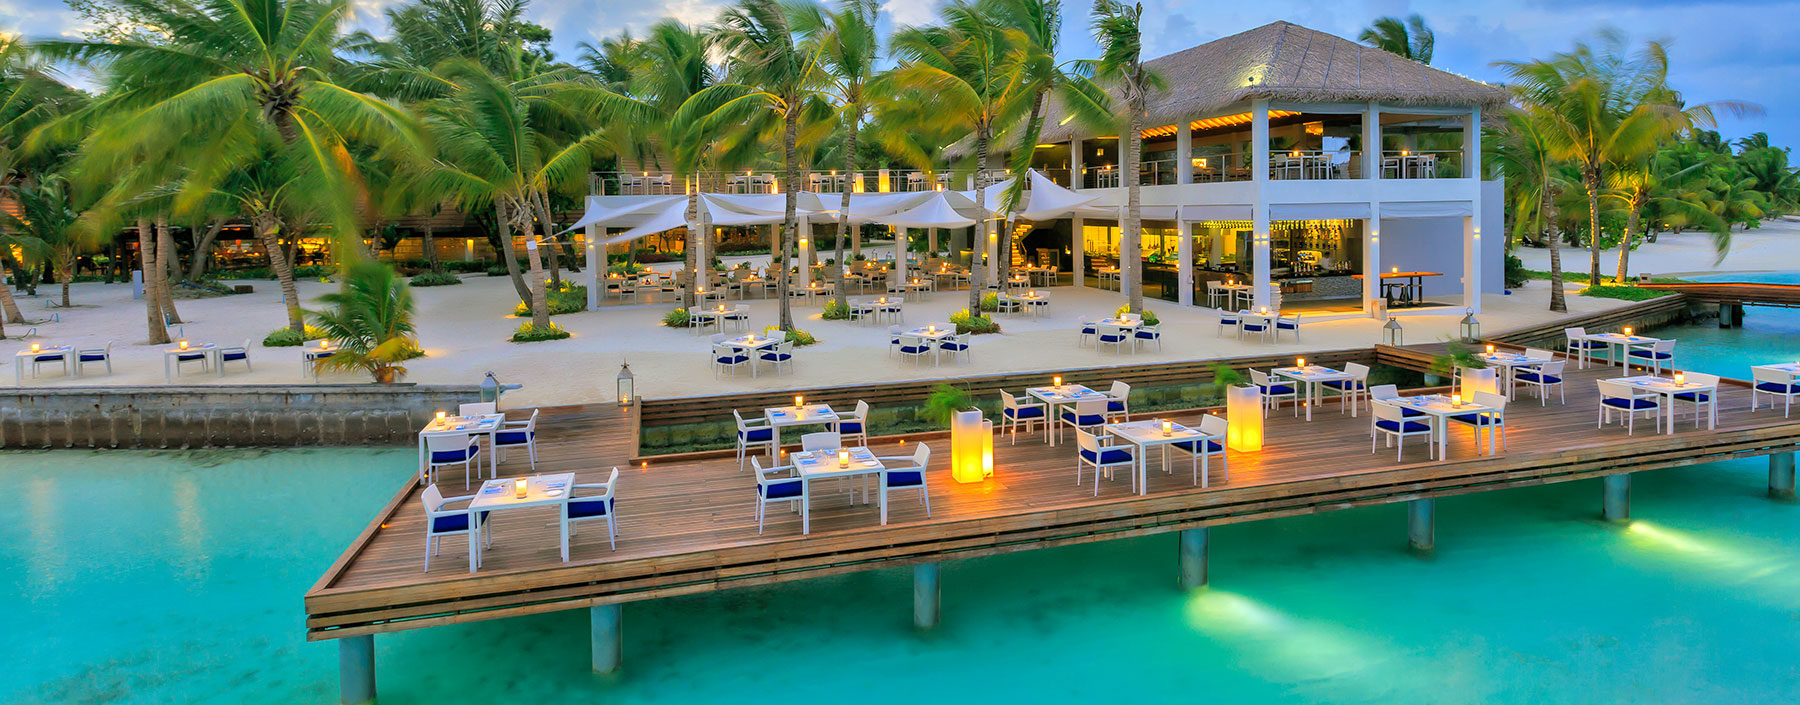 Thila Restaurant Kurumba Maldives - All Inclusive packages